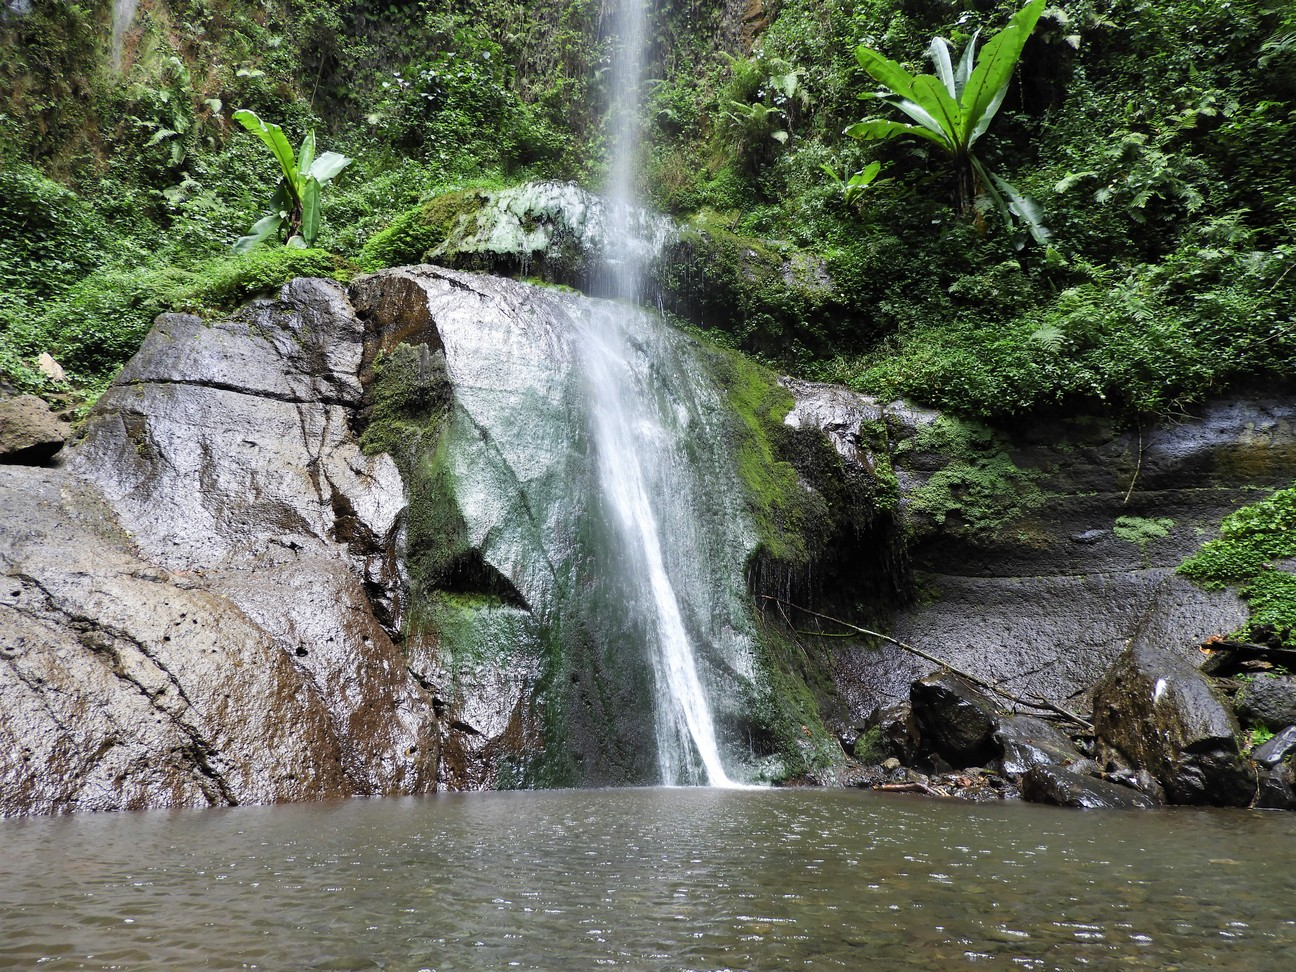 Hiking at Mount Meru - Waterfall